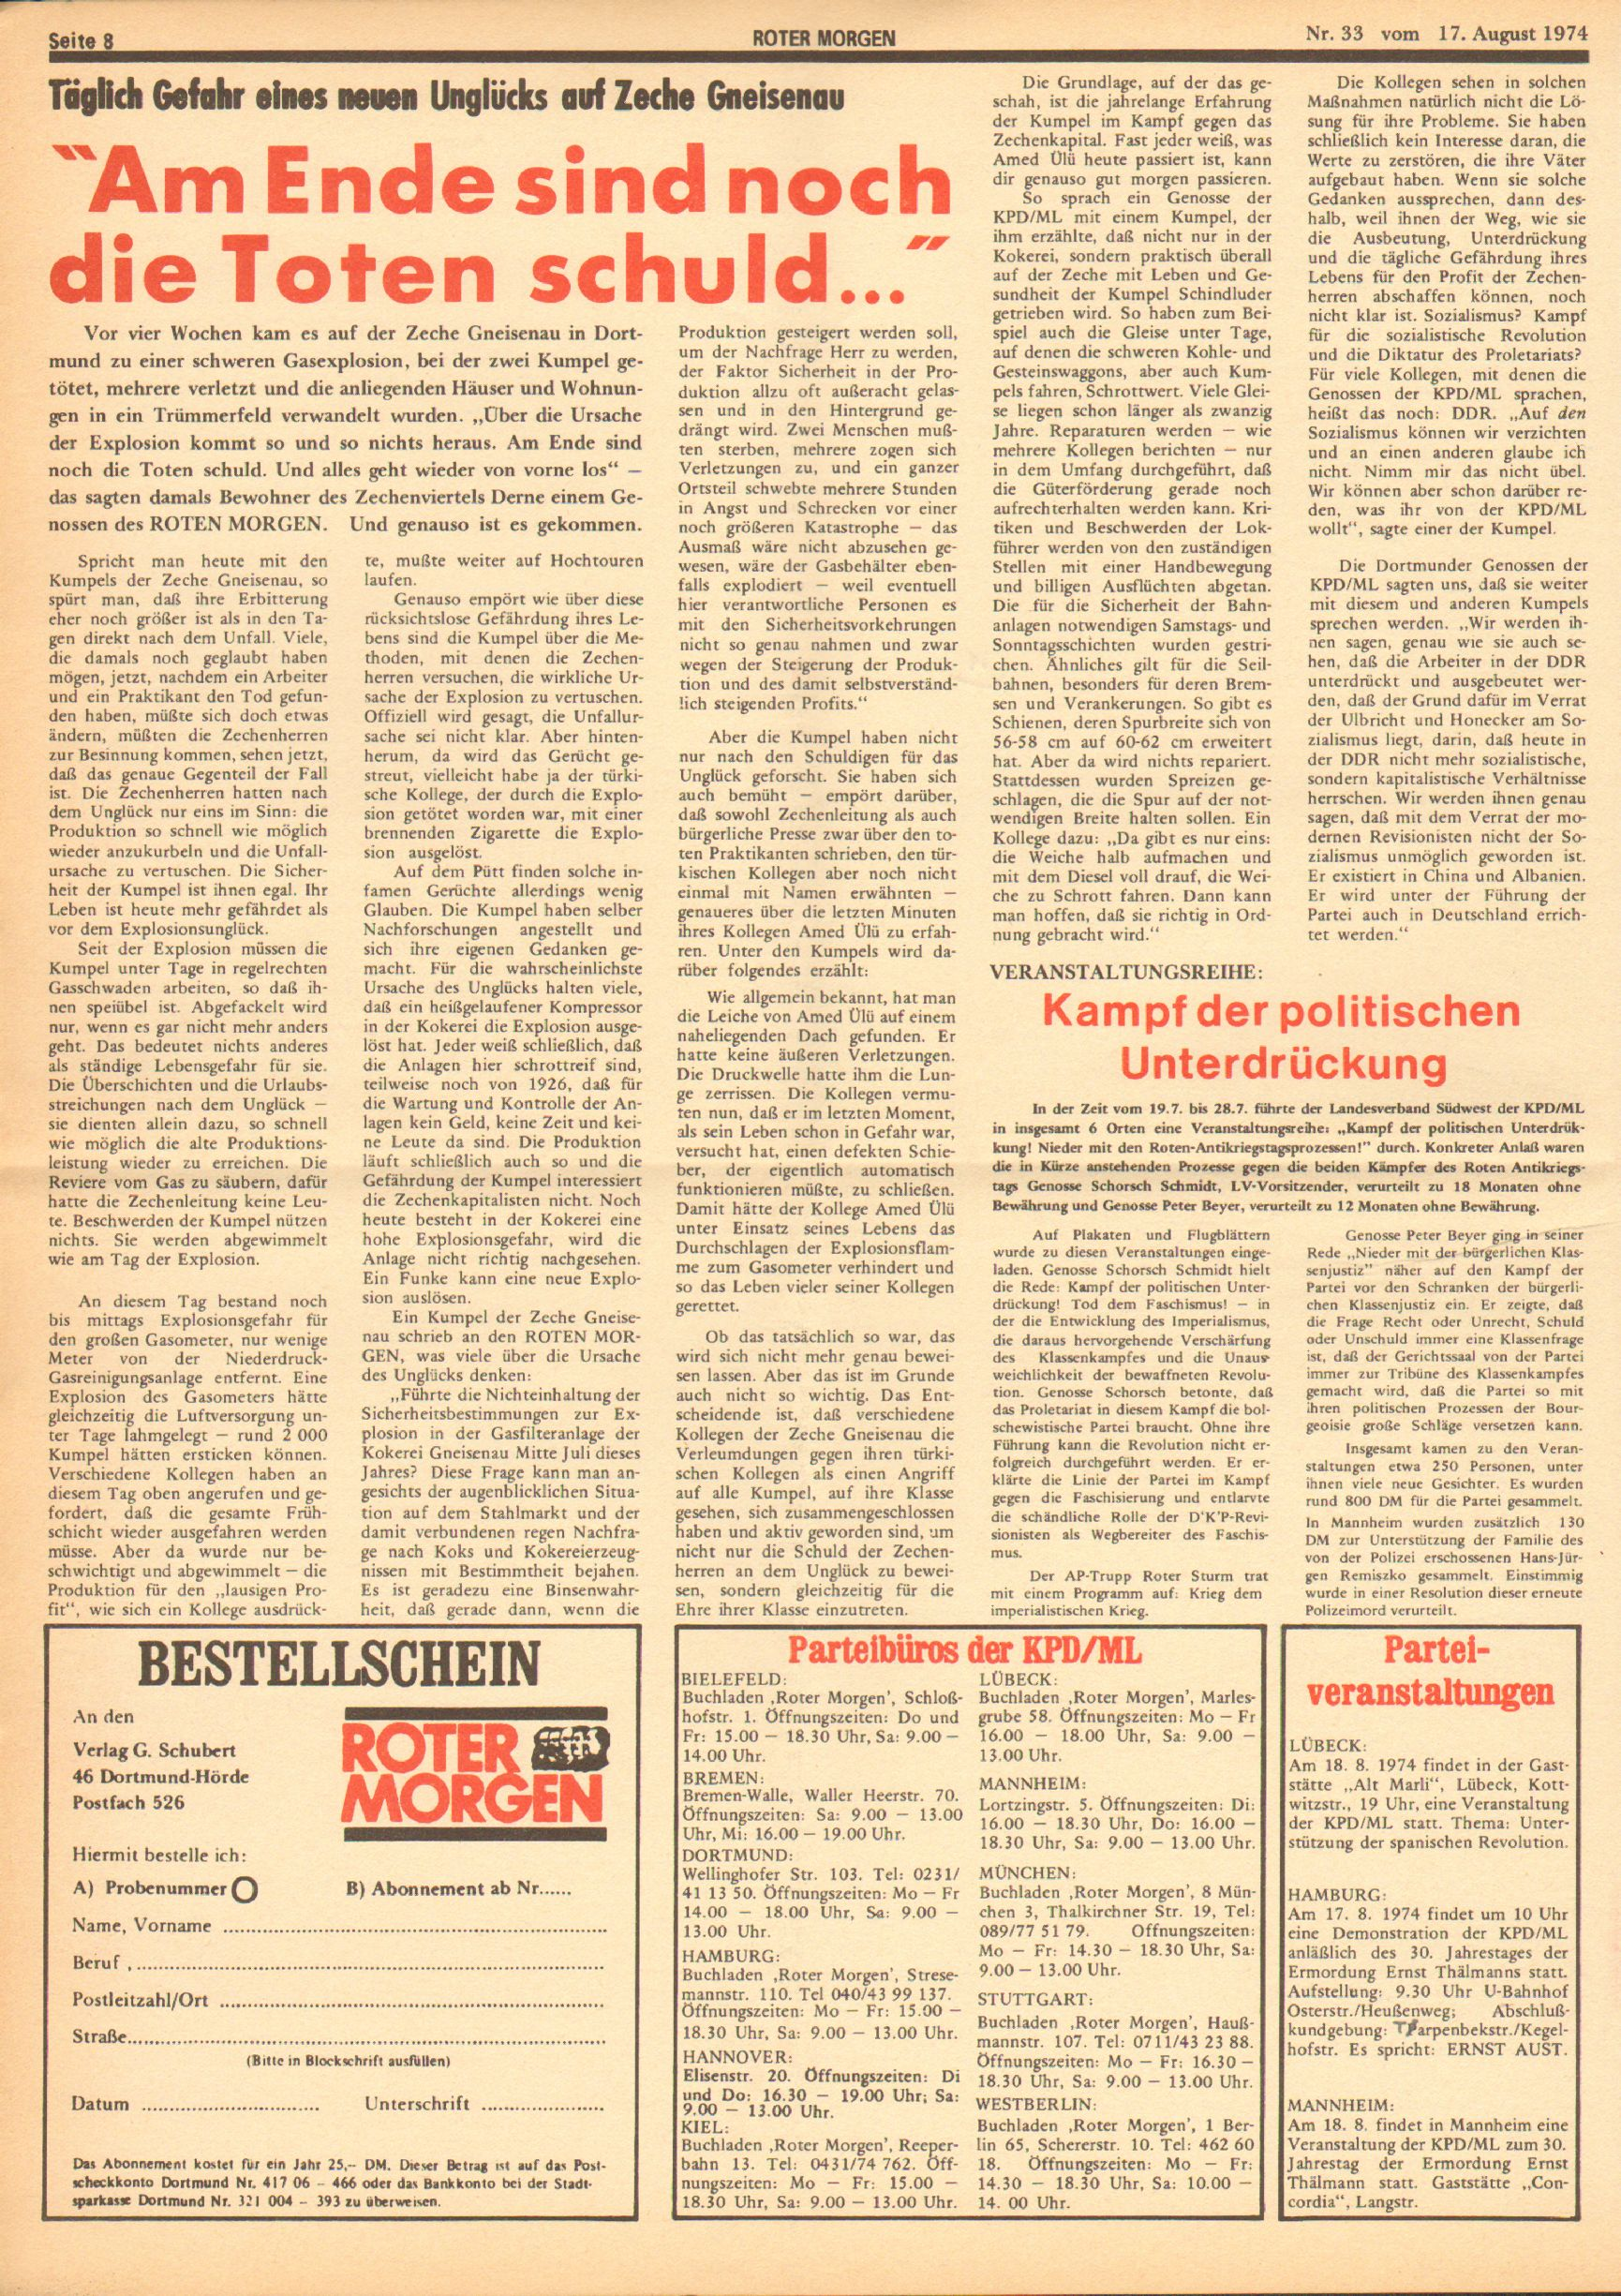 Roter Morgen, 8. Jg., 17. August 1974, Nr. 33, Seite 8